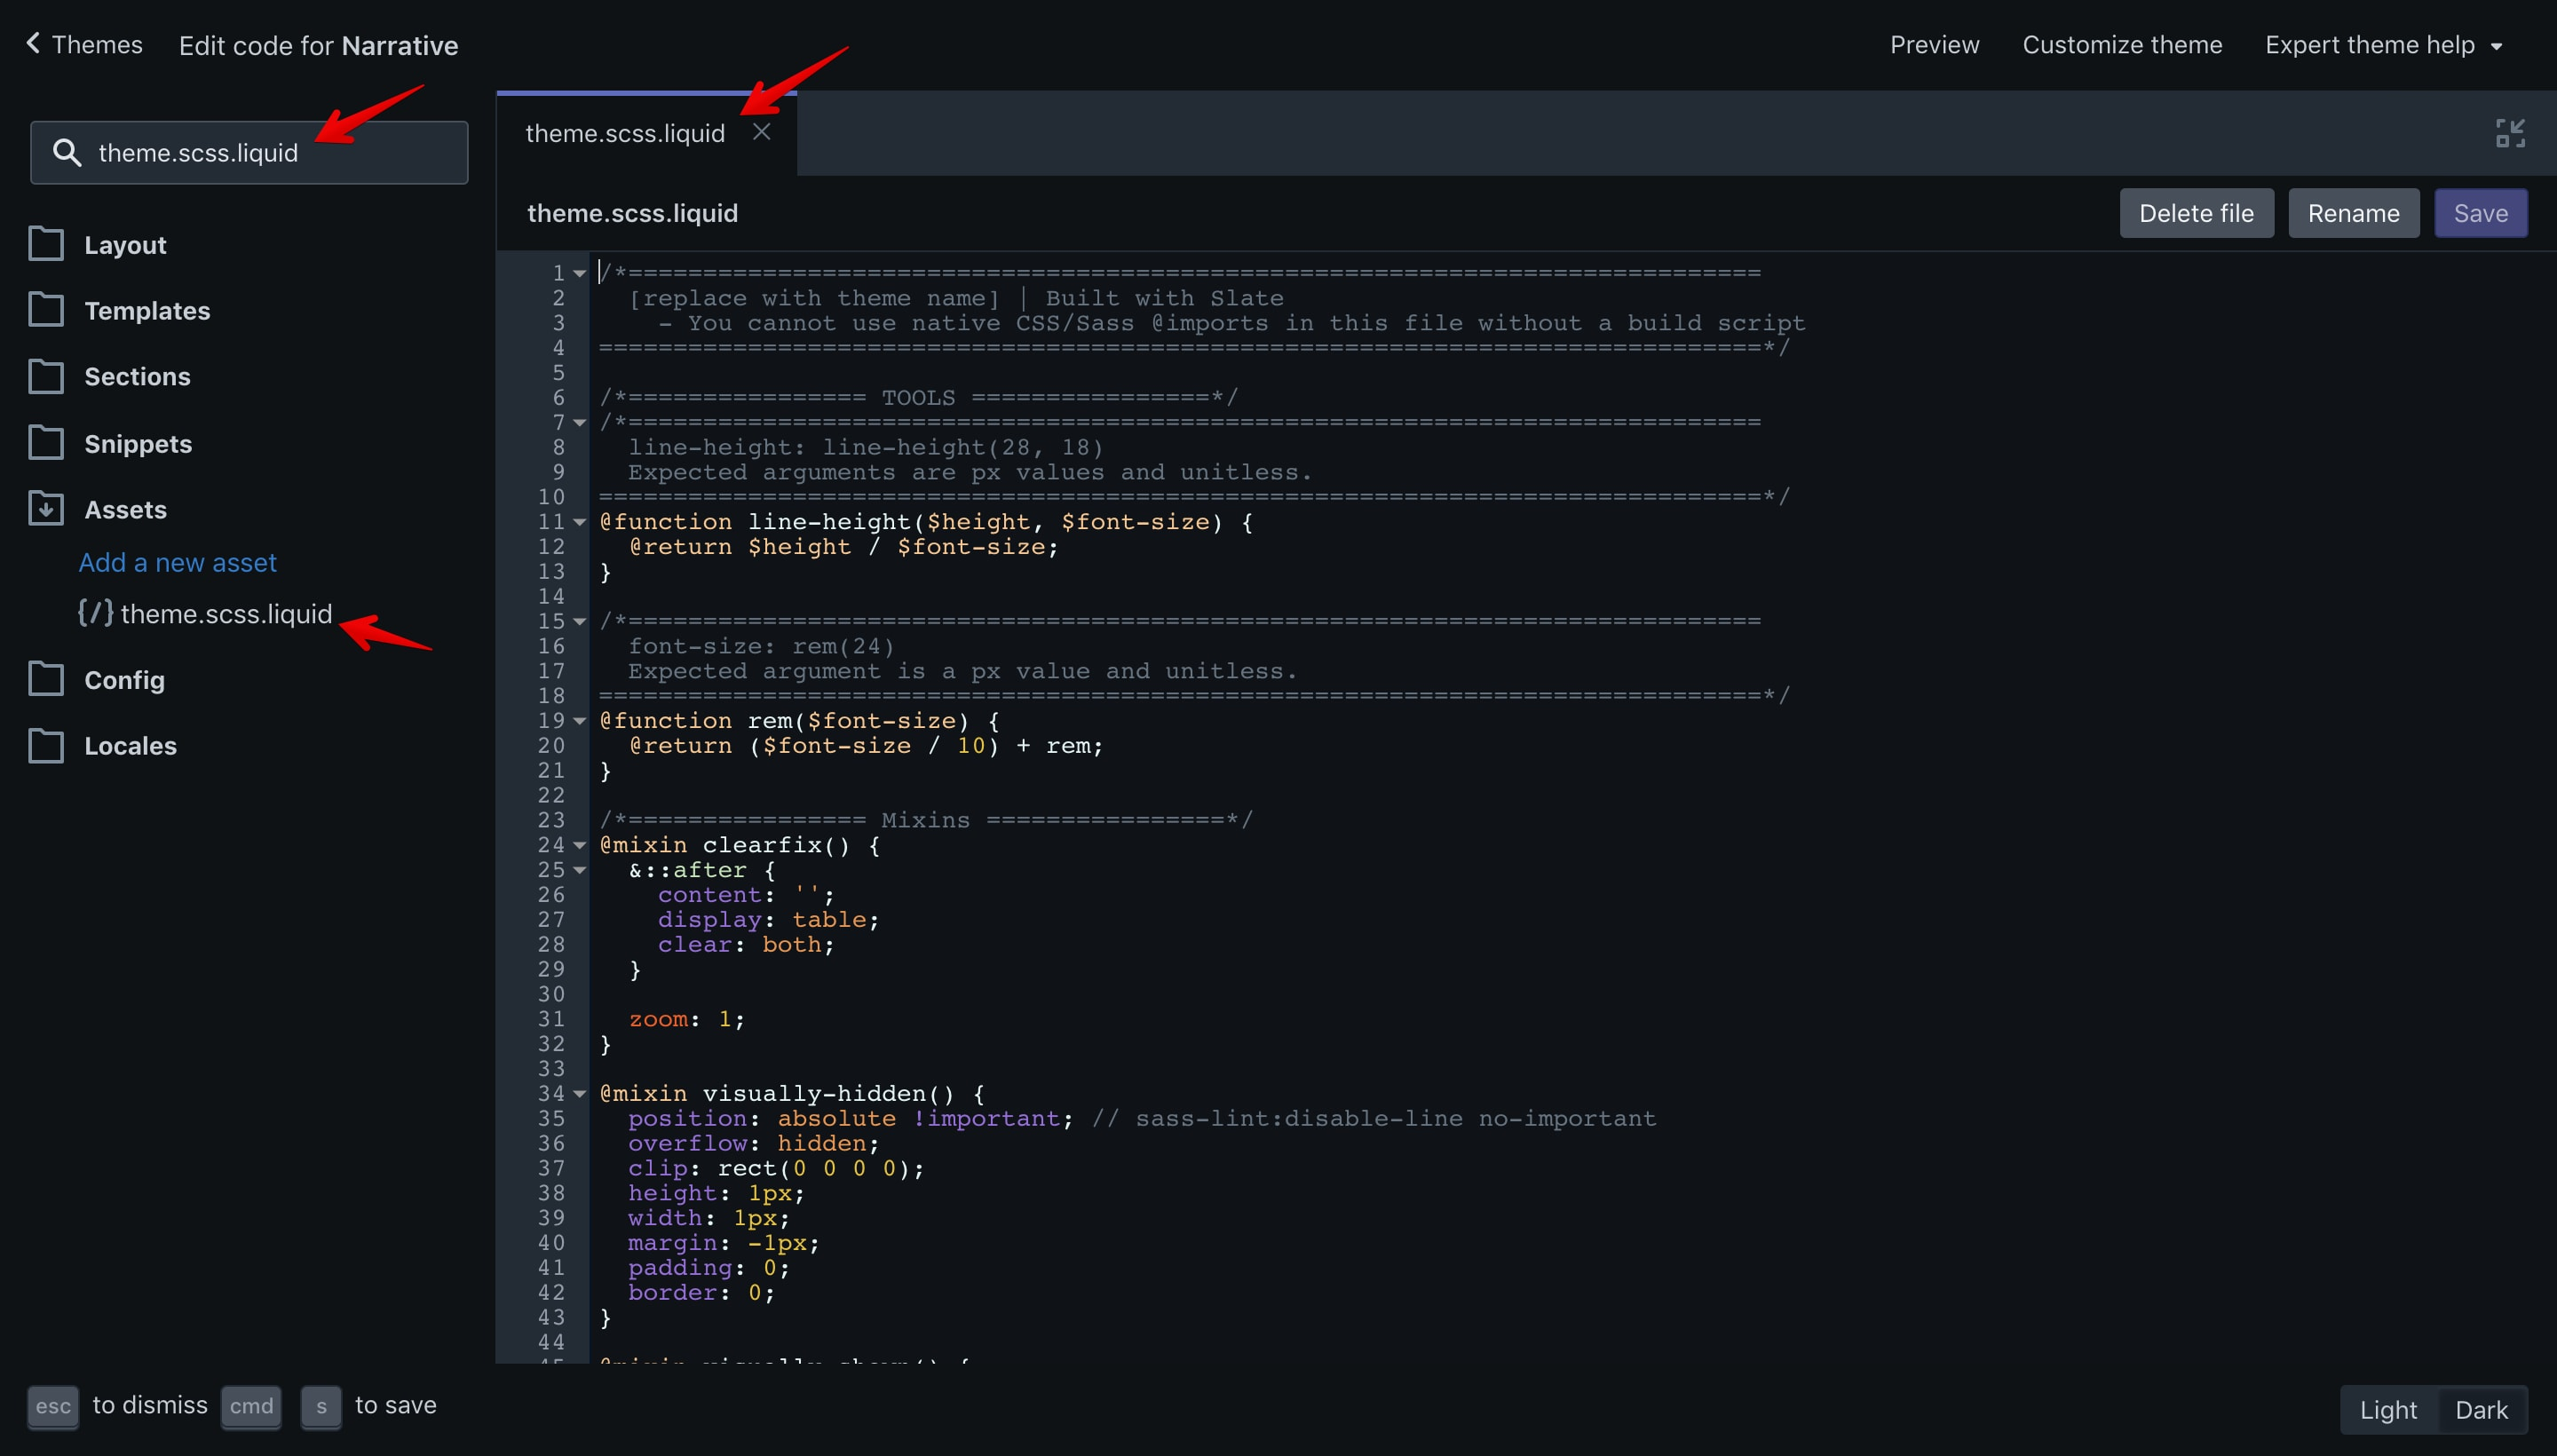 """Narrative """"theme.scss.liquid"""" file. In this file are the theme styles."""